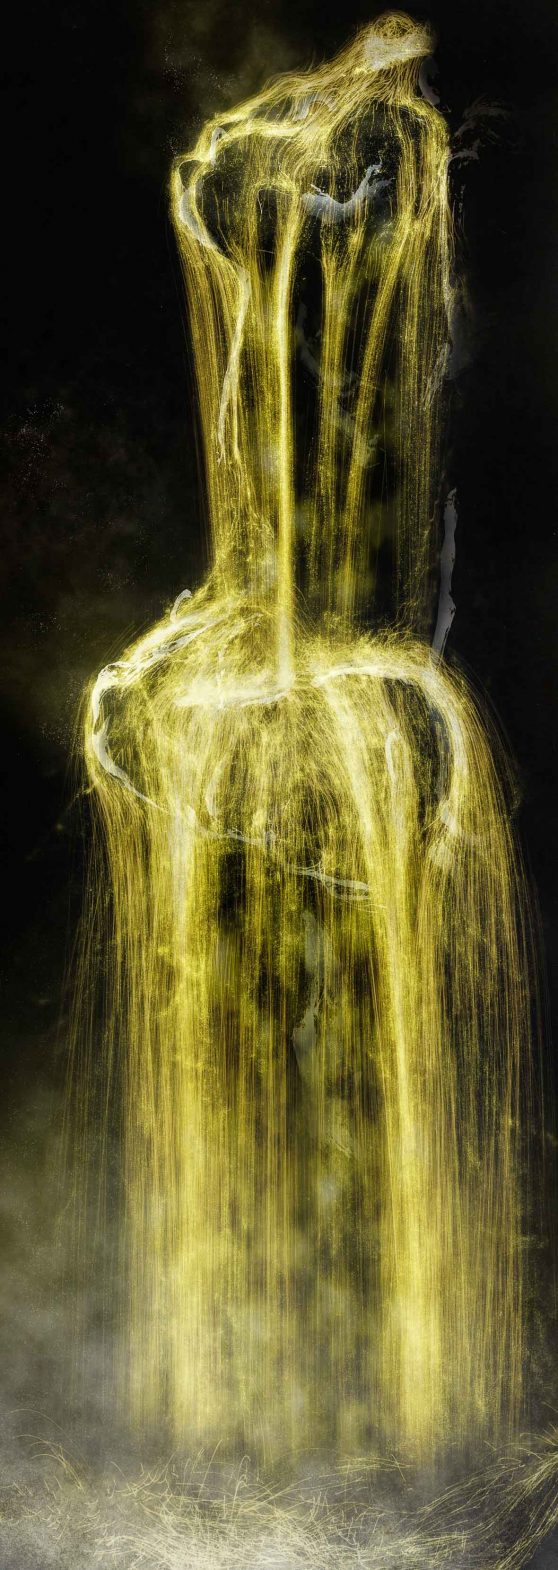 Universe of Water Particles – Gold teamLab, 2016, Digital Work, 5 channels, Continuous Loop.